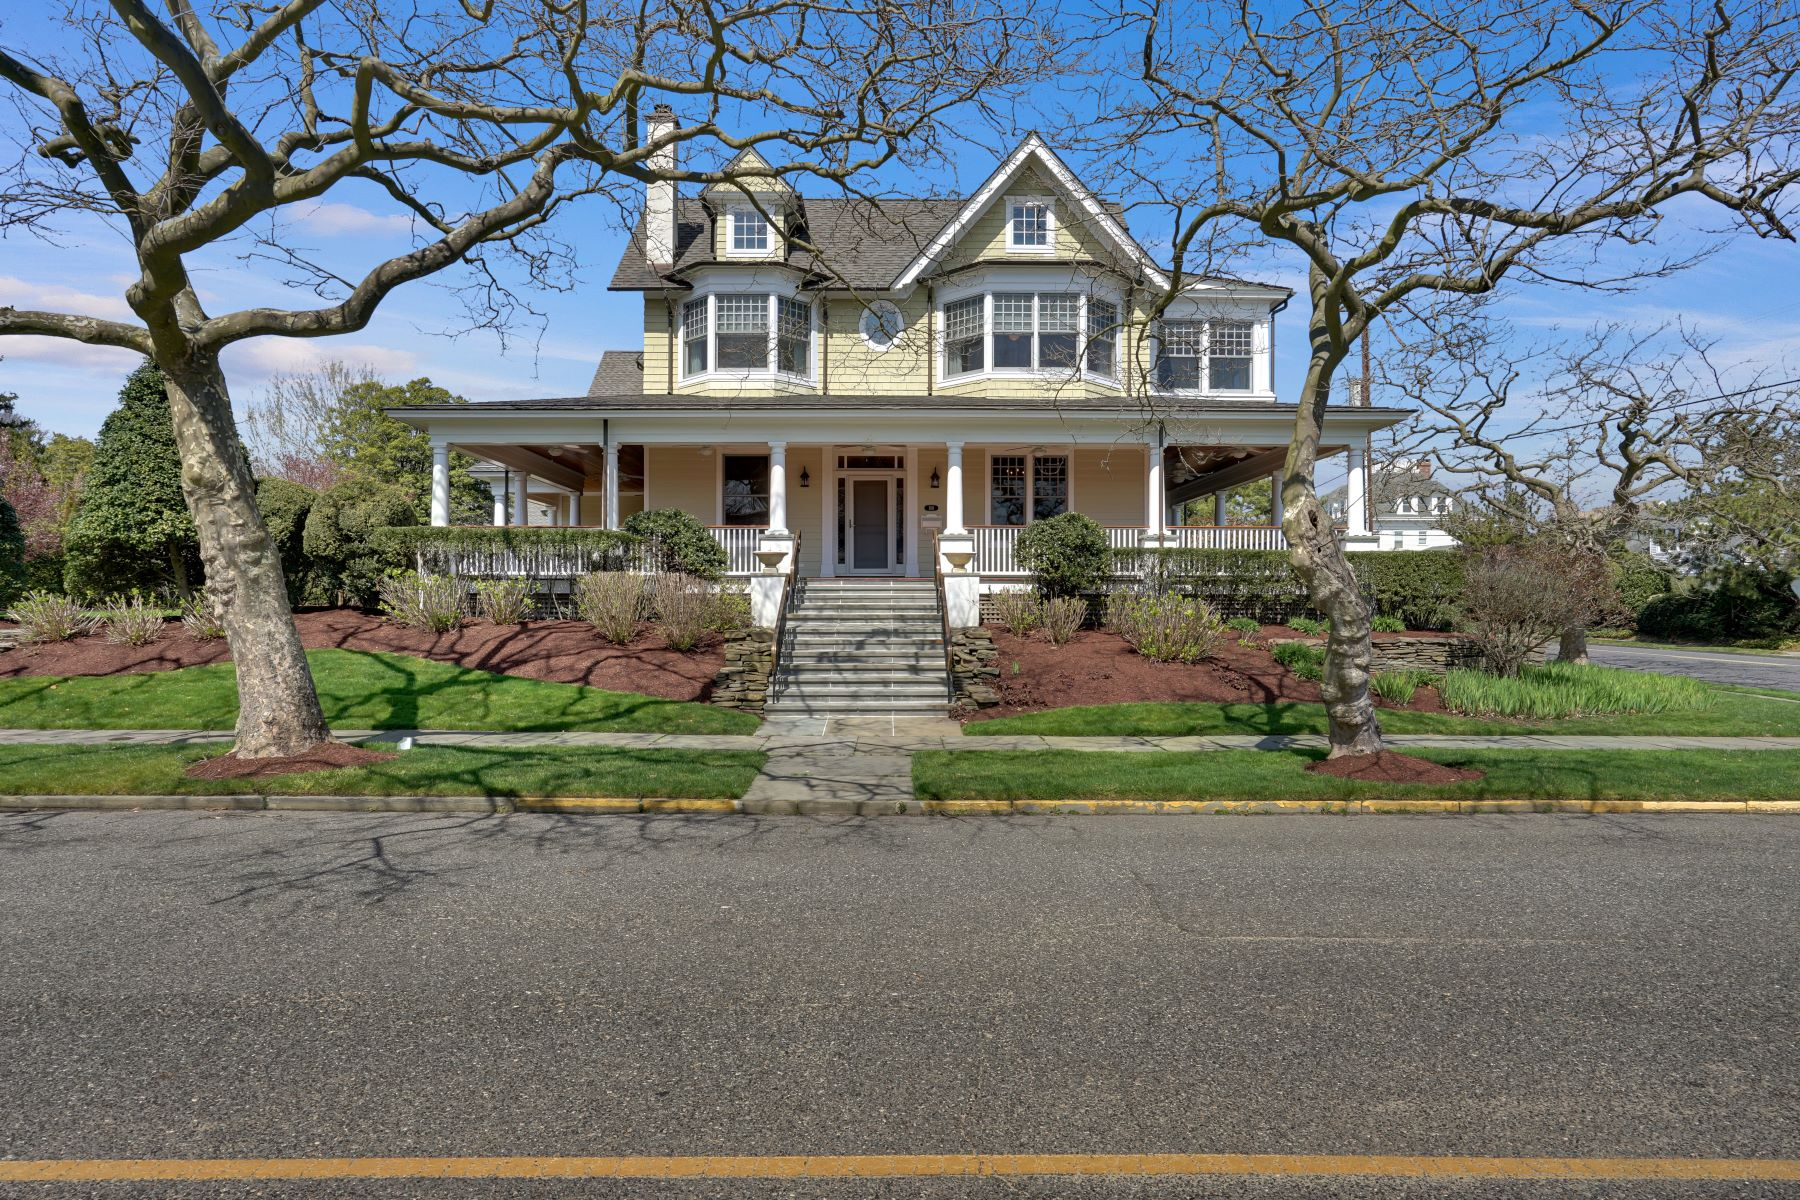 Single Family Homes for Sale at Quintessential Spring Laker 100 Madison Avenue Spring Lake, New Jersey 07762 United States